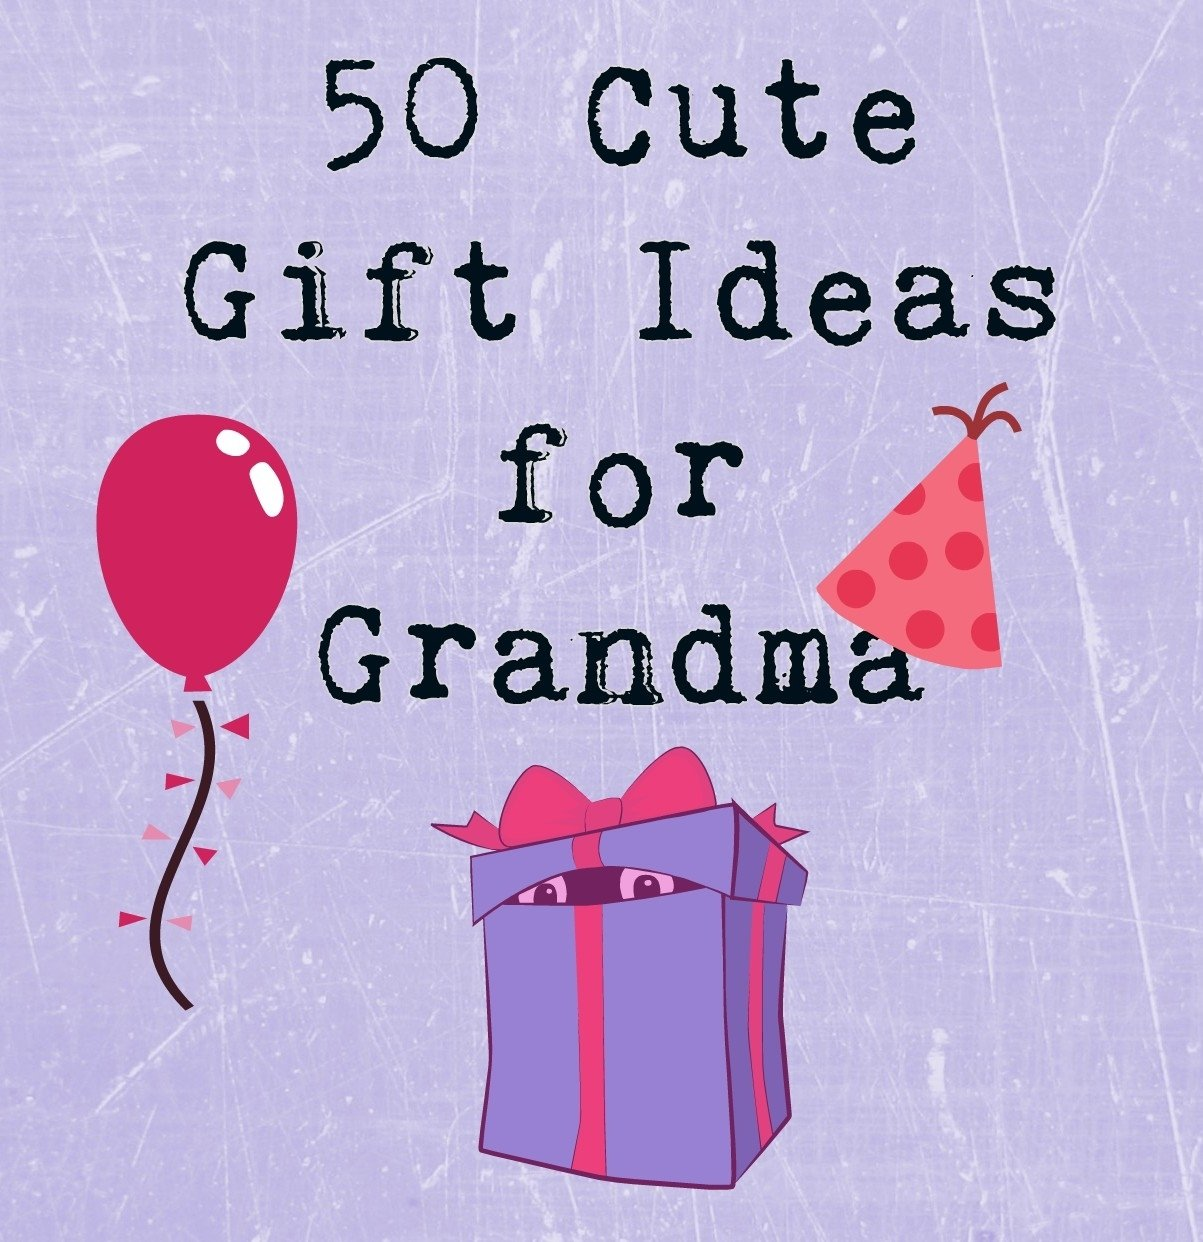 10 Most Recommended Grandparents To Be Gift Ideas 50 really sweet gifts for grandmas time for the holidays 2020